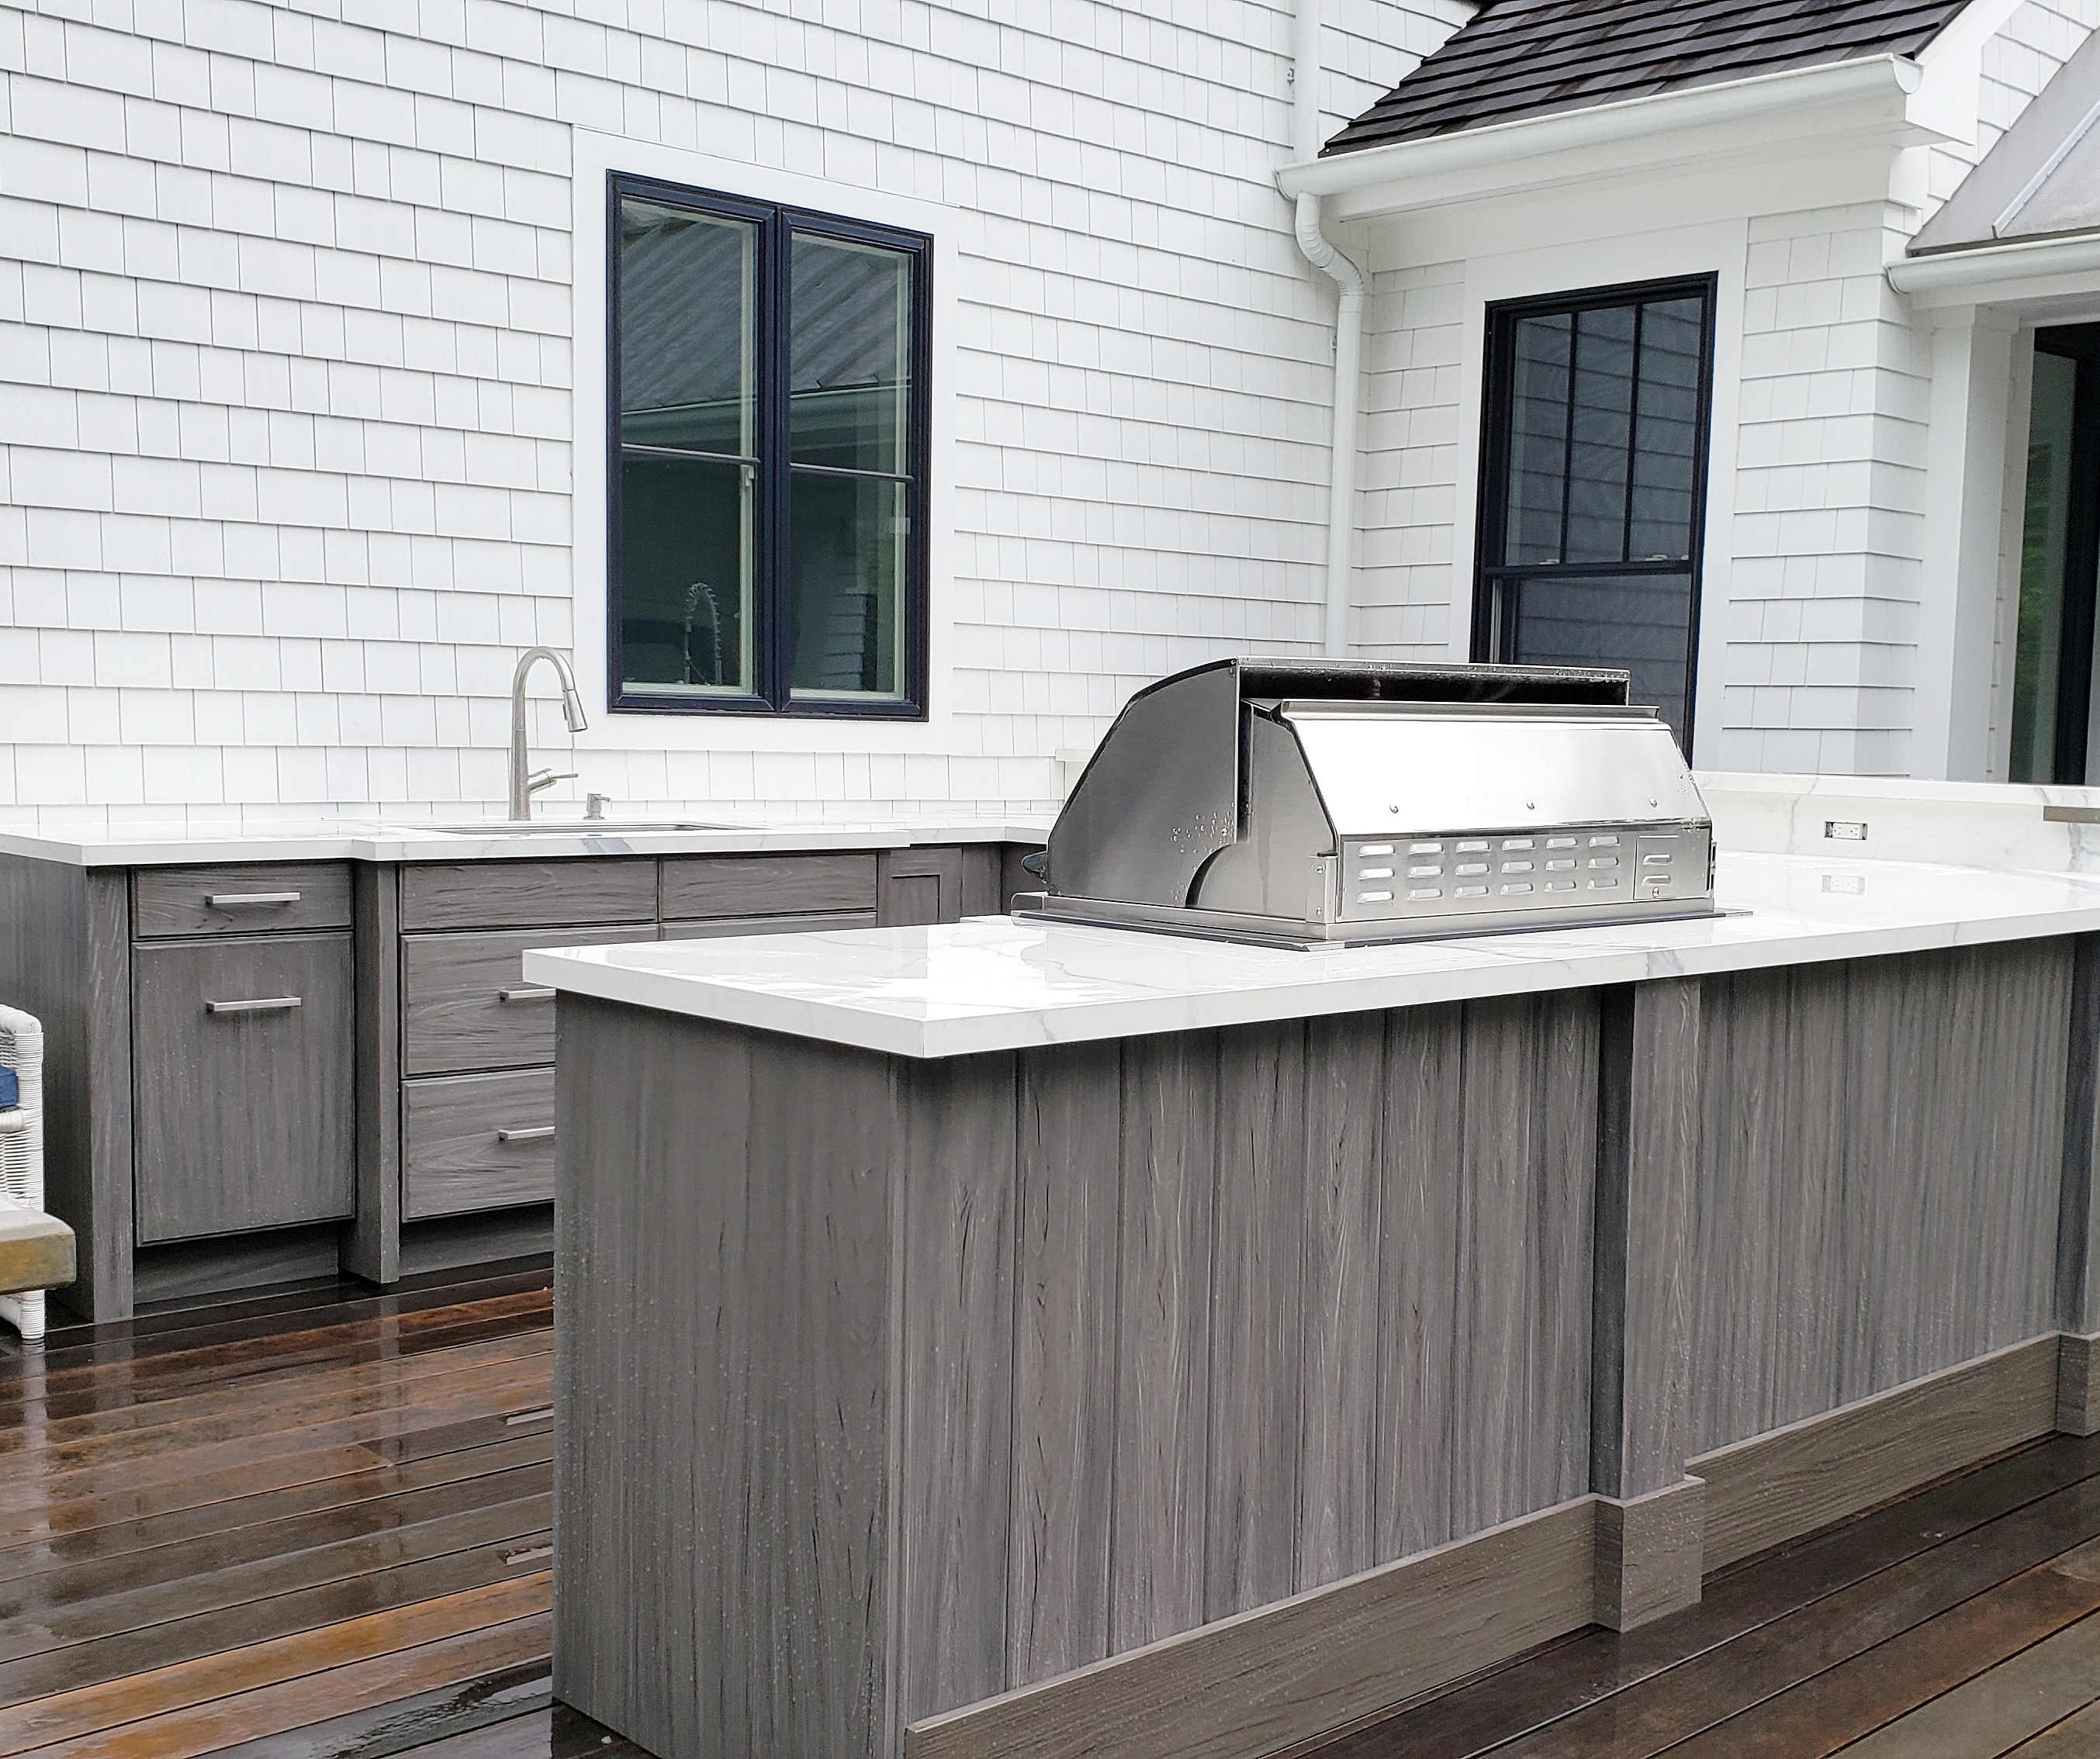 The U shaped Outdoor Kitchen works well for family and friends.